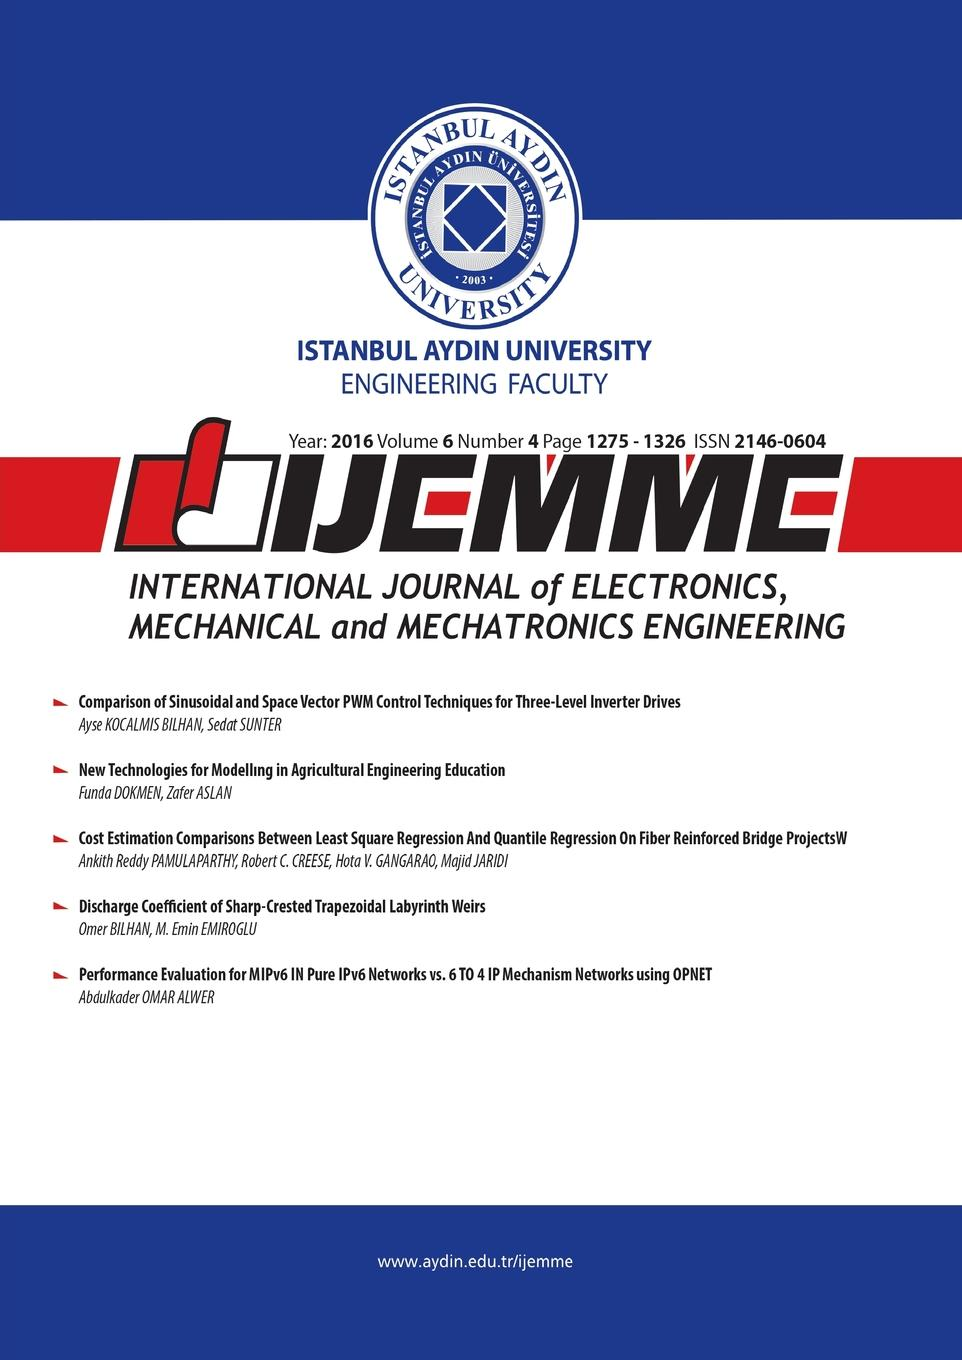 IJEMME. International Journal of Electronics, Mechanical and Mechatronics Engineering j davim paulo mechanical engineering education